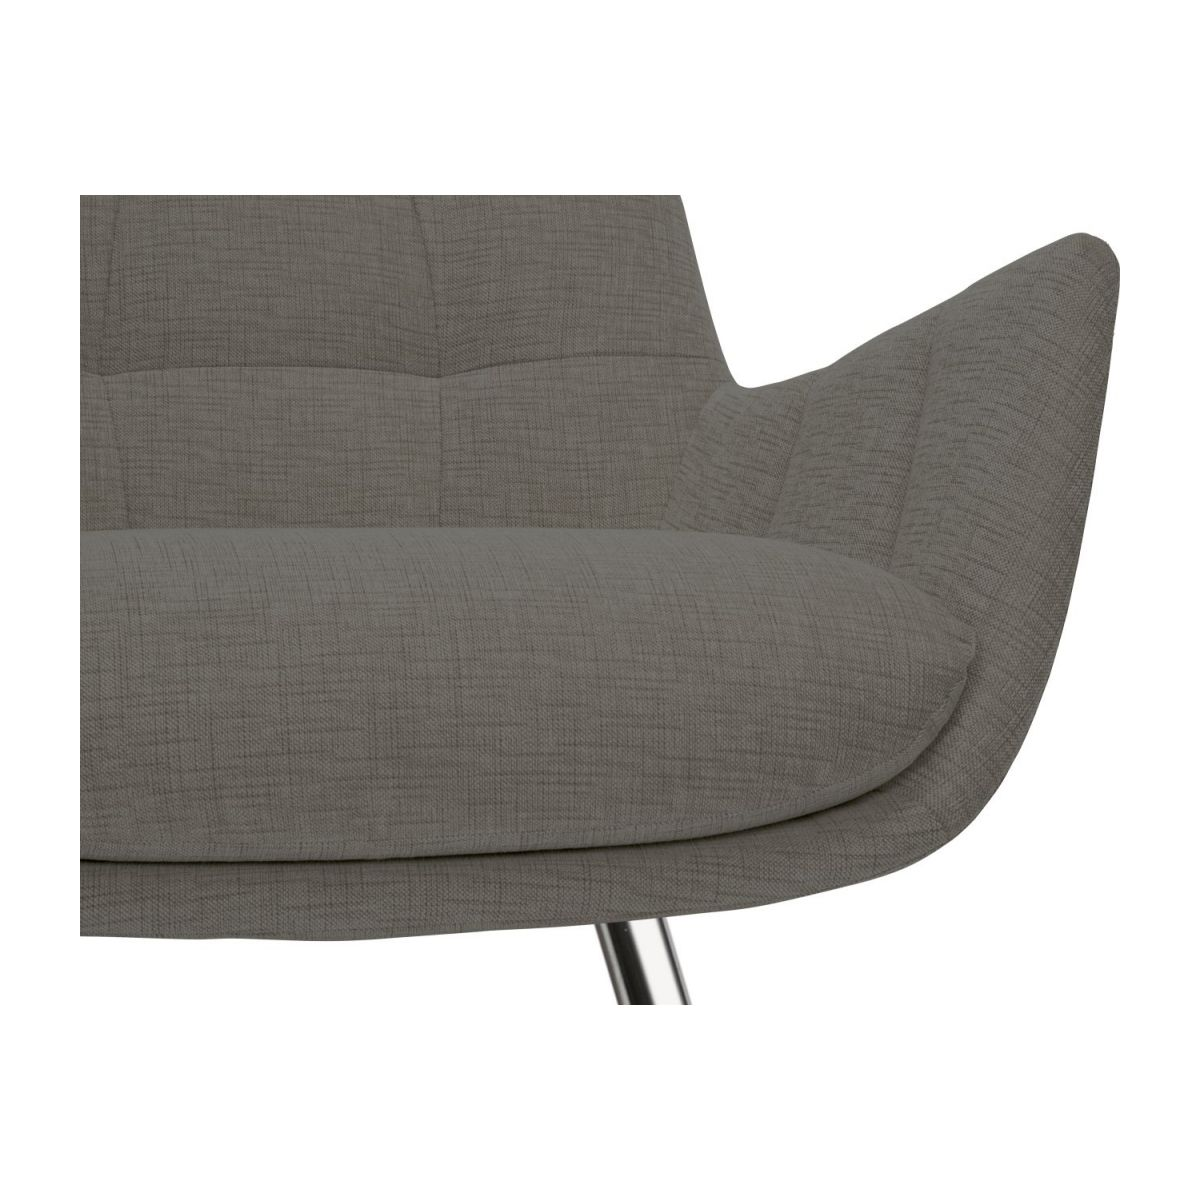 Armchair in Ancio fabric, river rock with chromed metal legs n°7